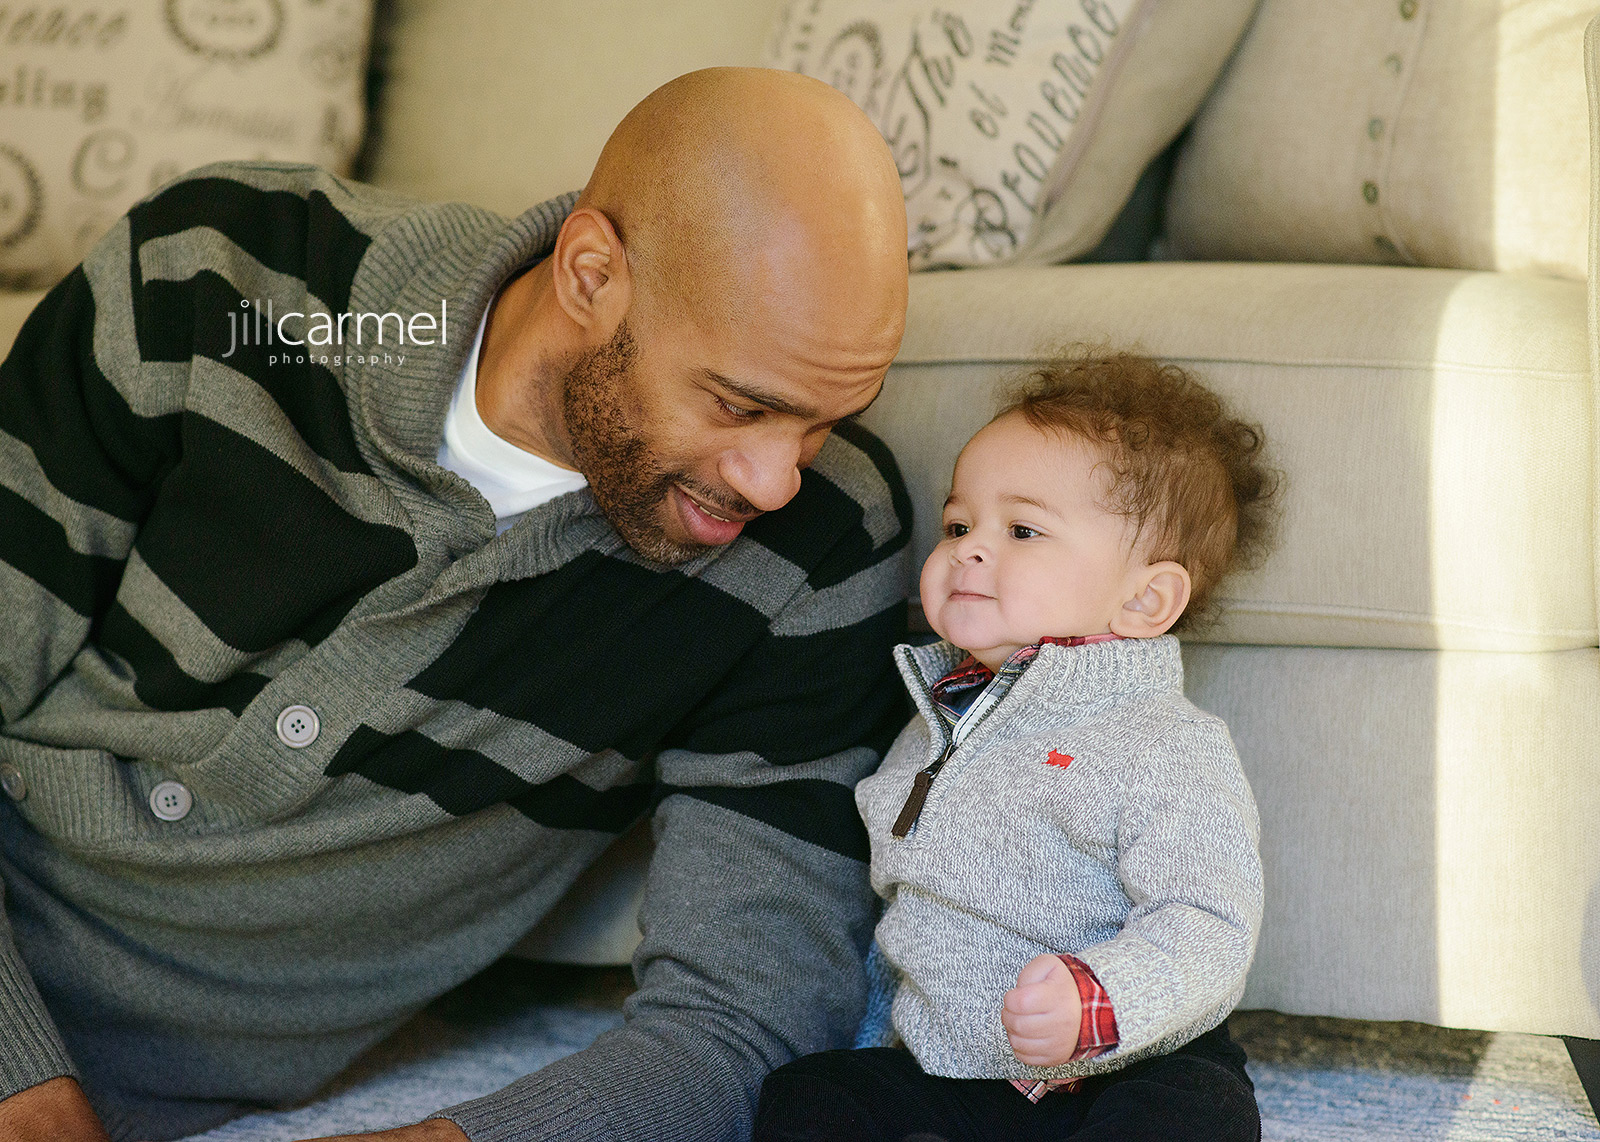 Vince Carter with Baby Boy on Couch